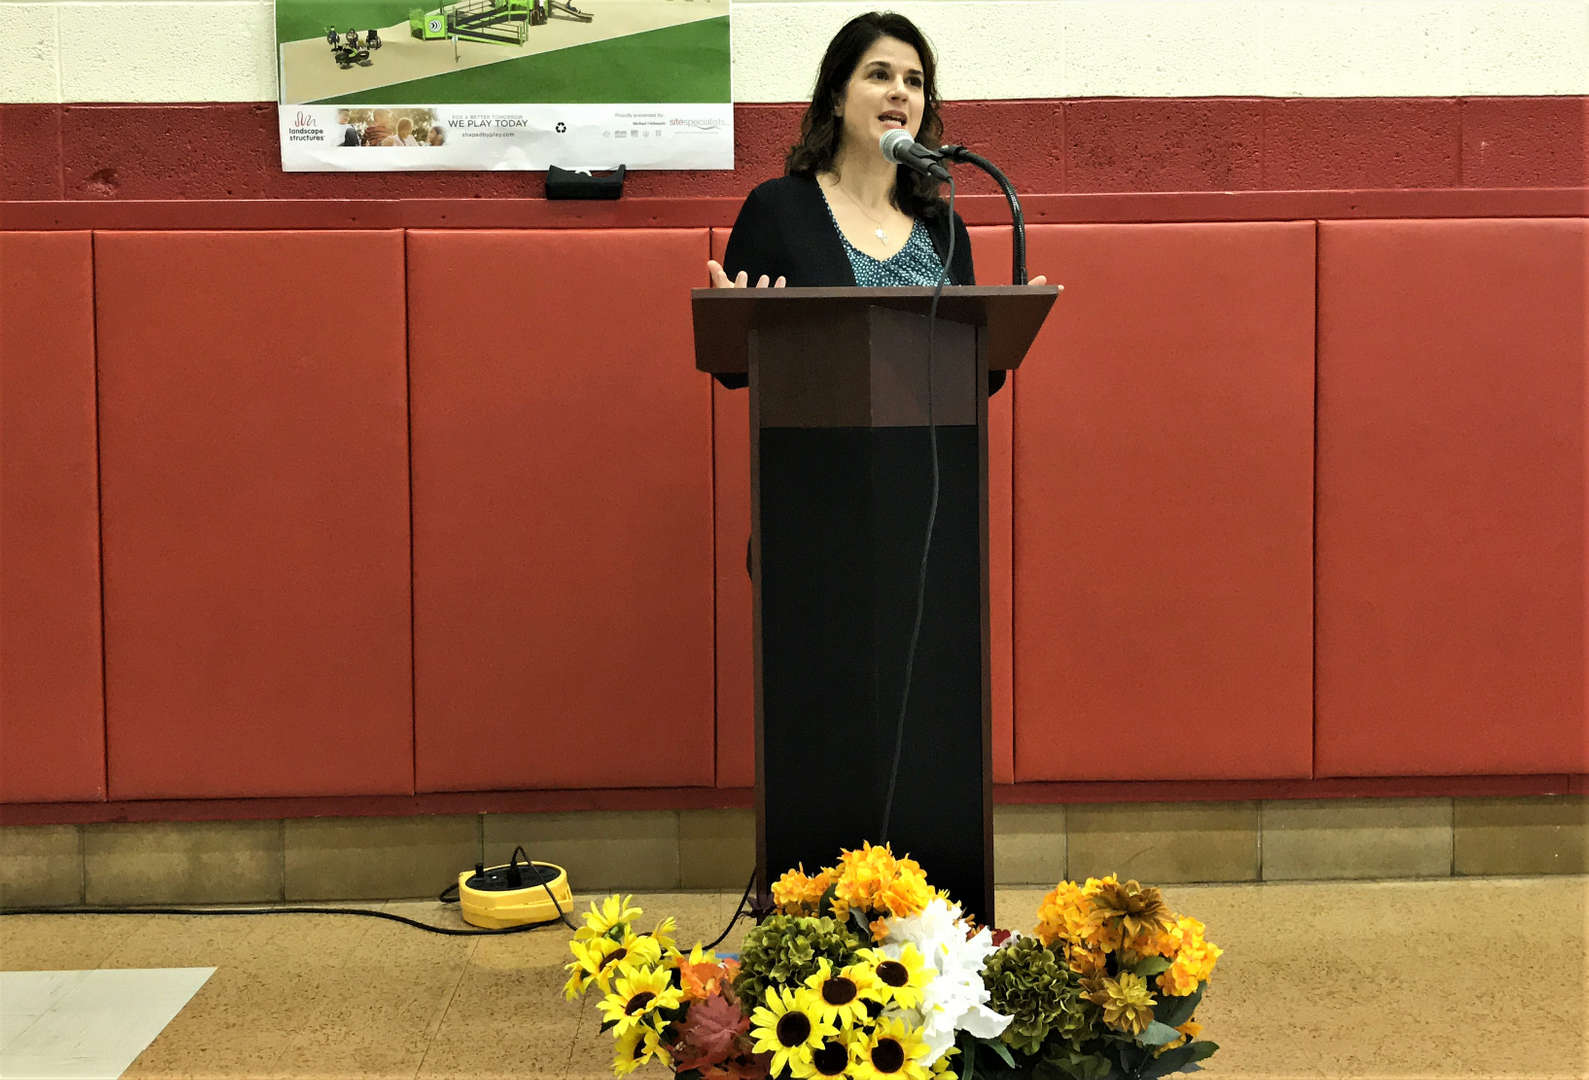 SEPTA President Anne Marie Cellante addressed parents and guardians.